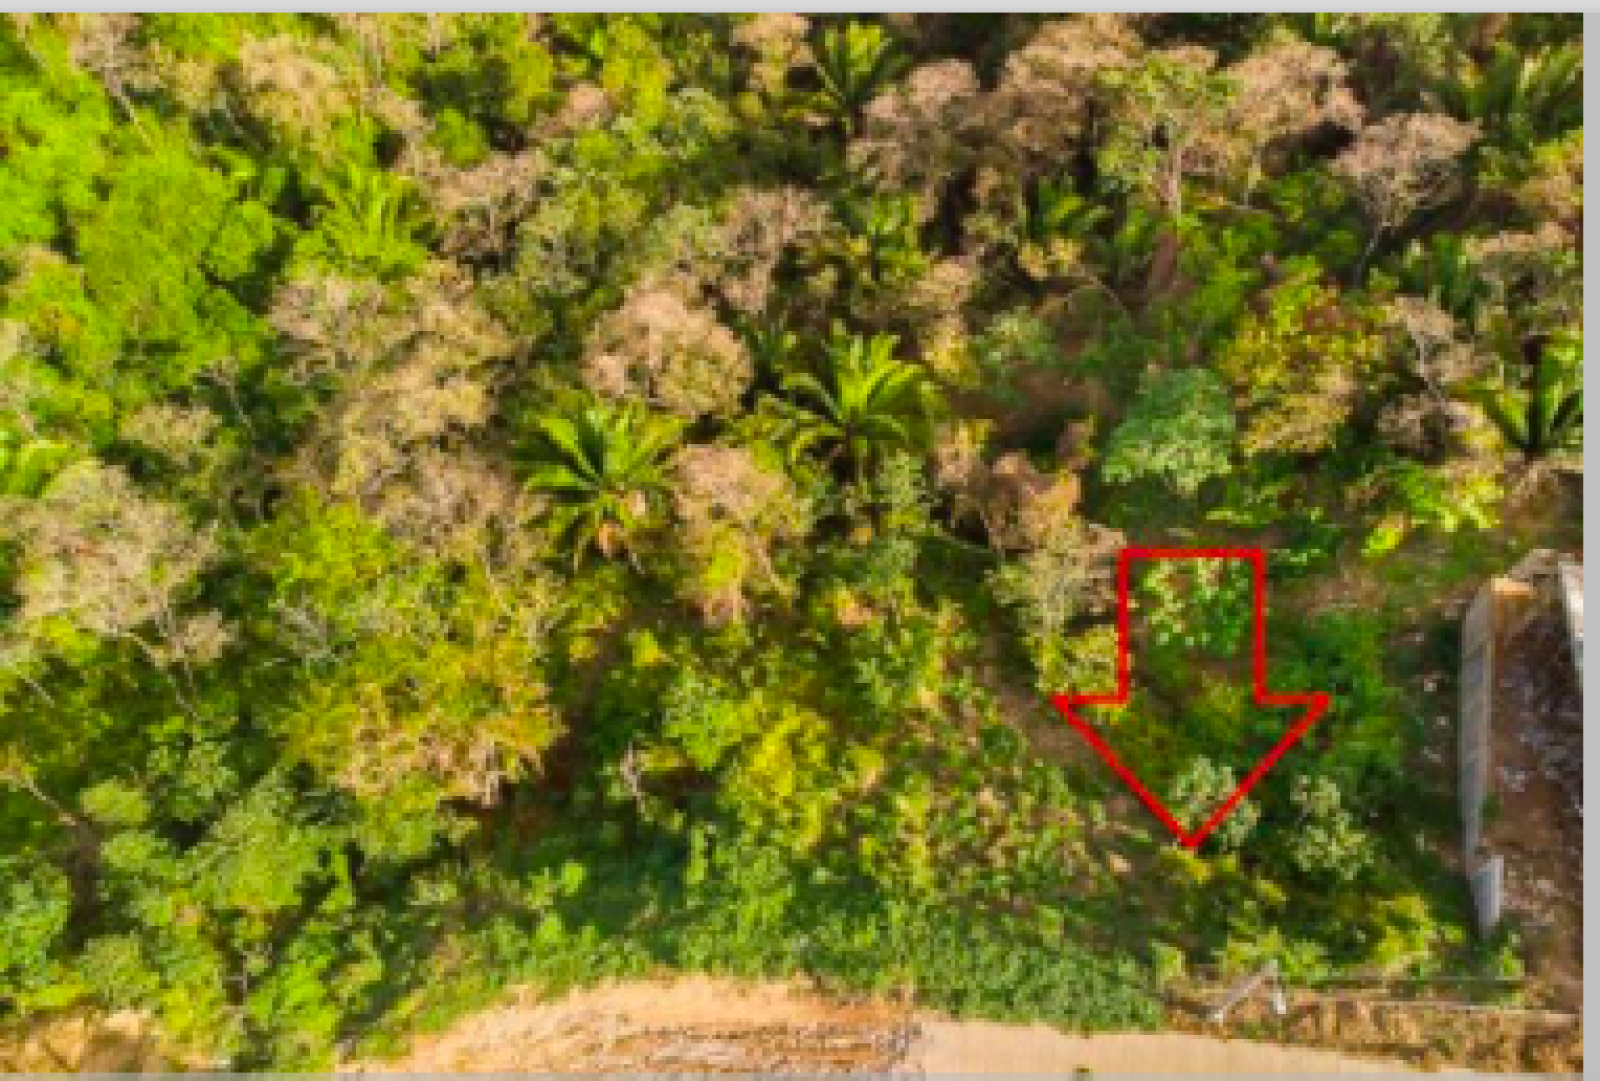 Overhead view of lush vegetation on lot and adjoining available lot